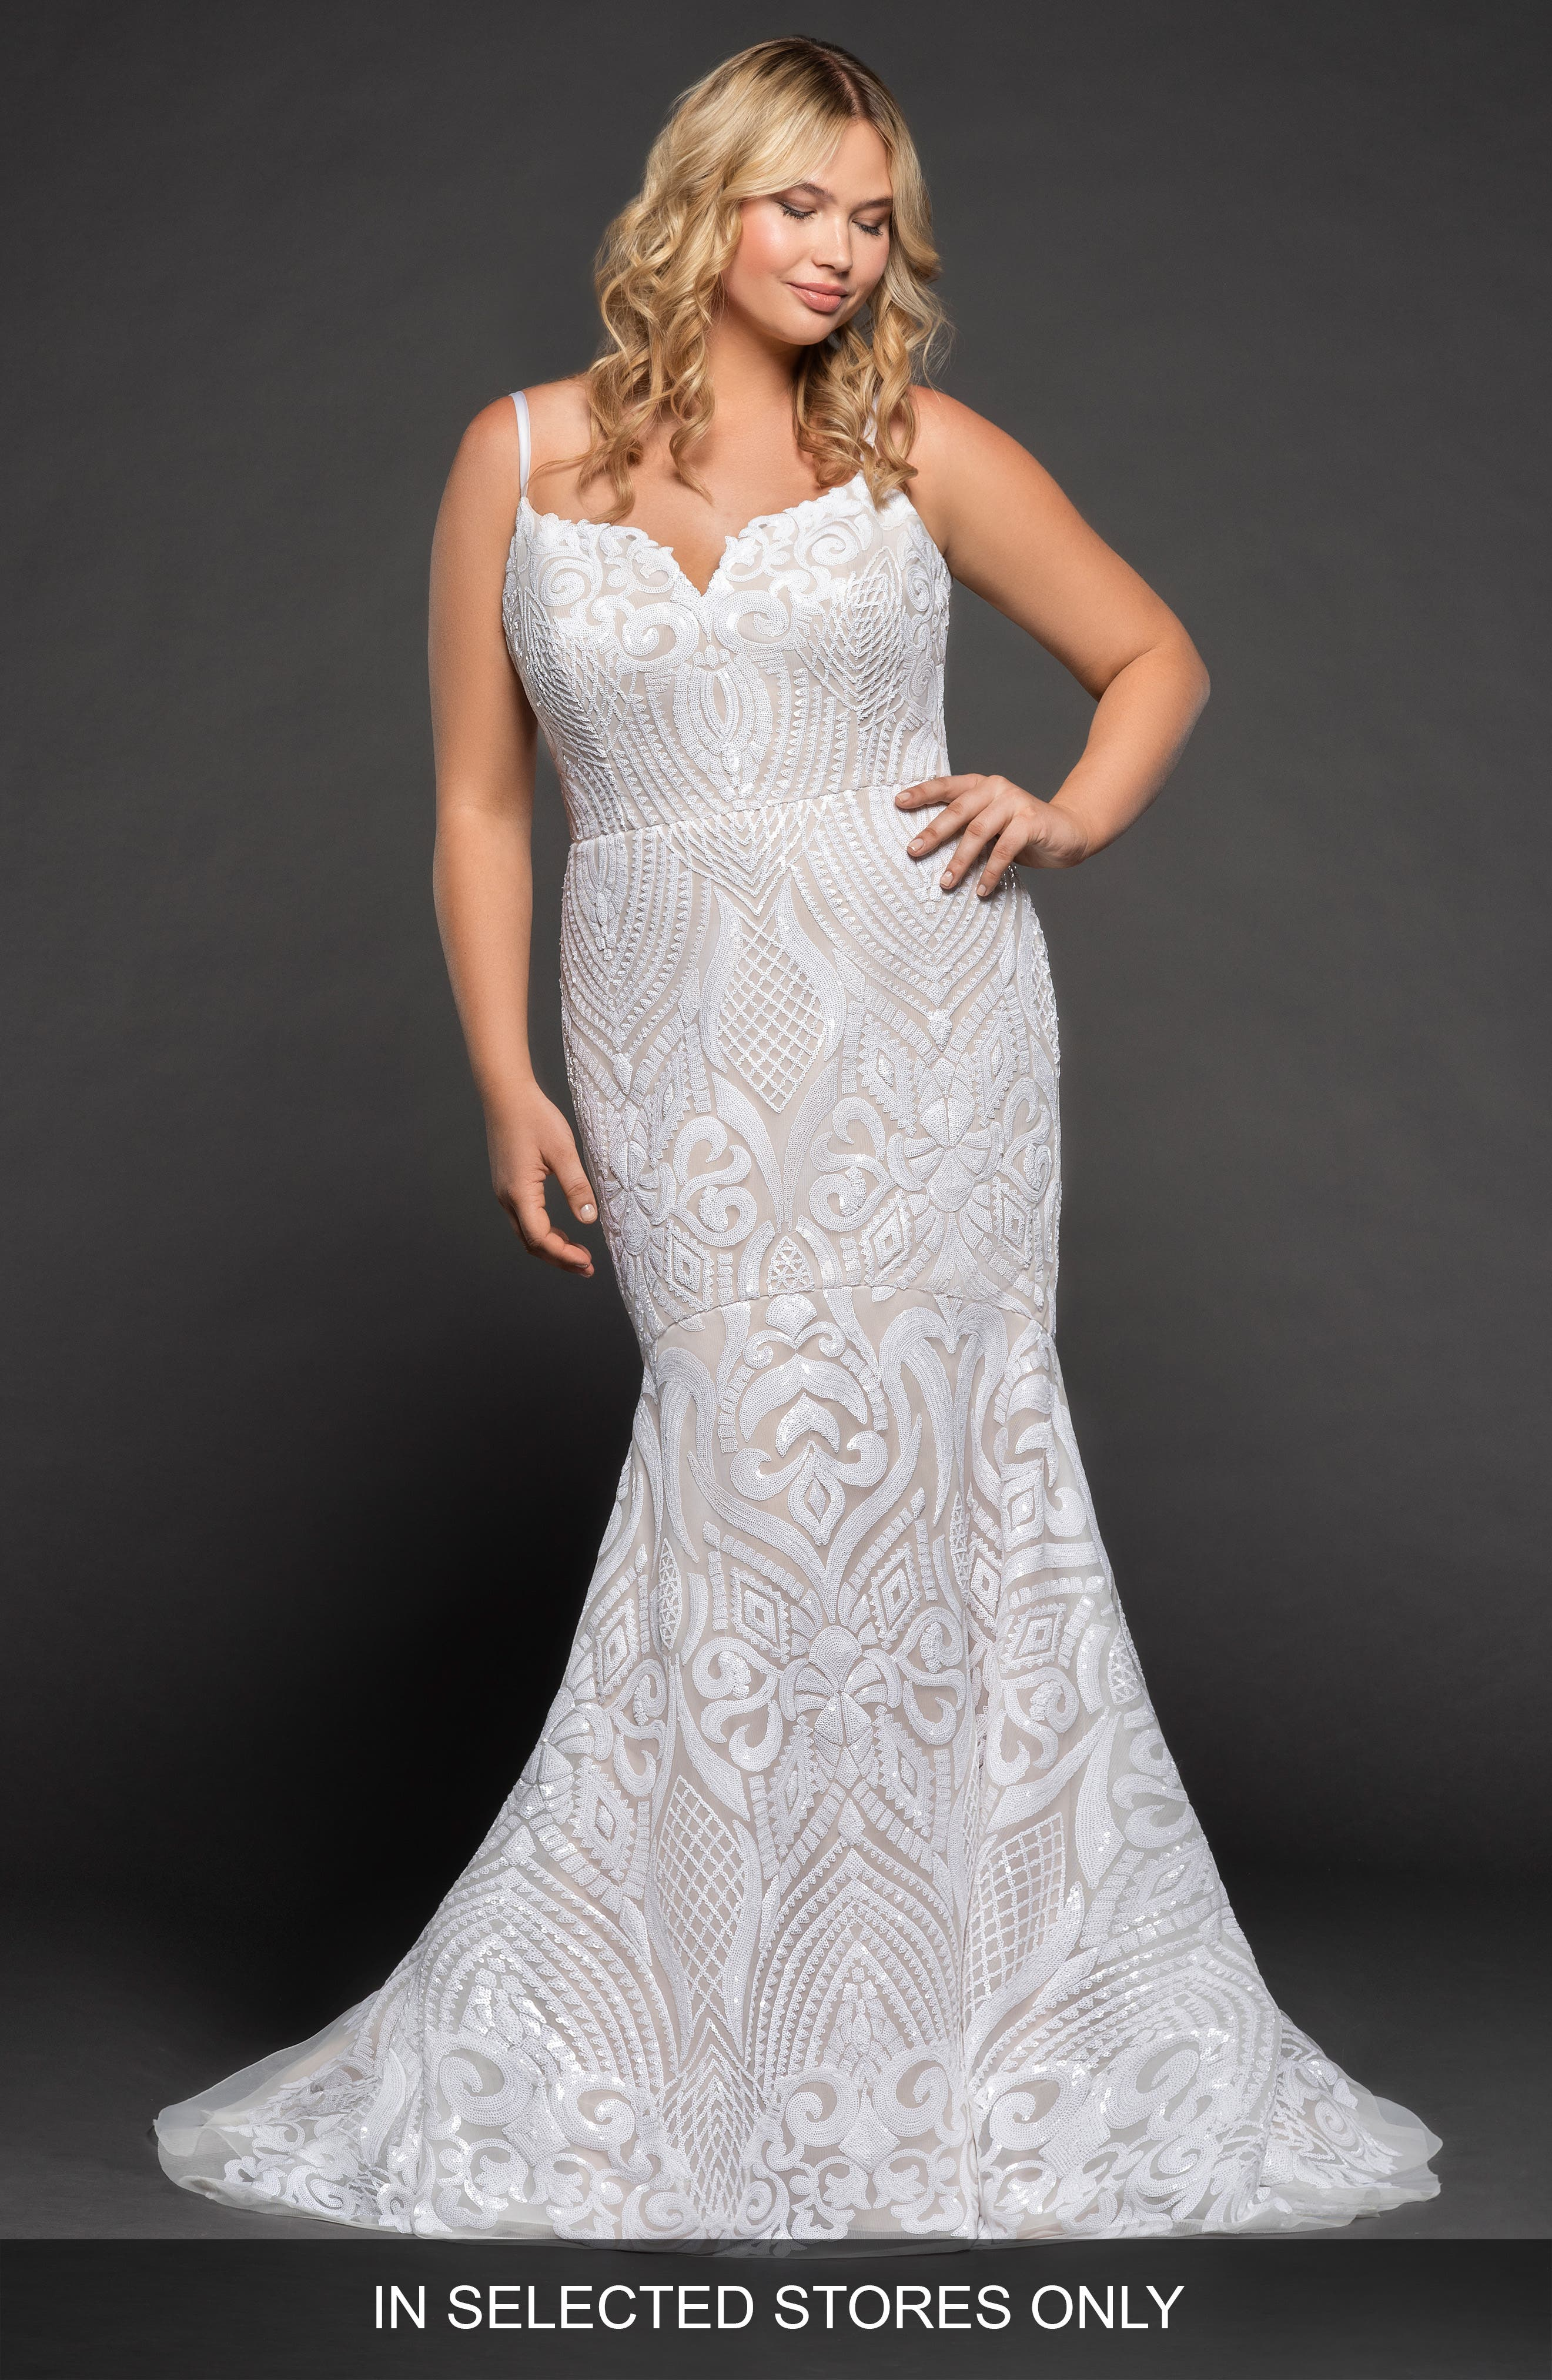 West Mermaid Gown,                             Main thumbnail 1, color,                             SOLID IVORY